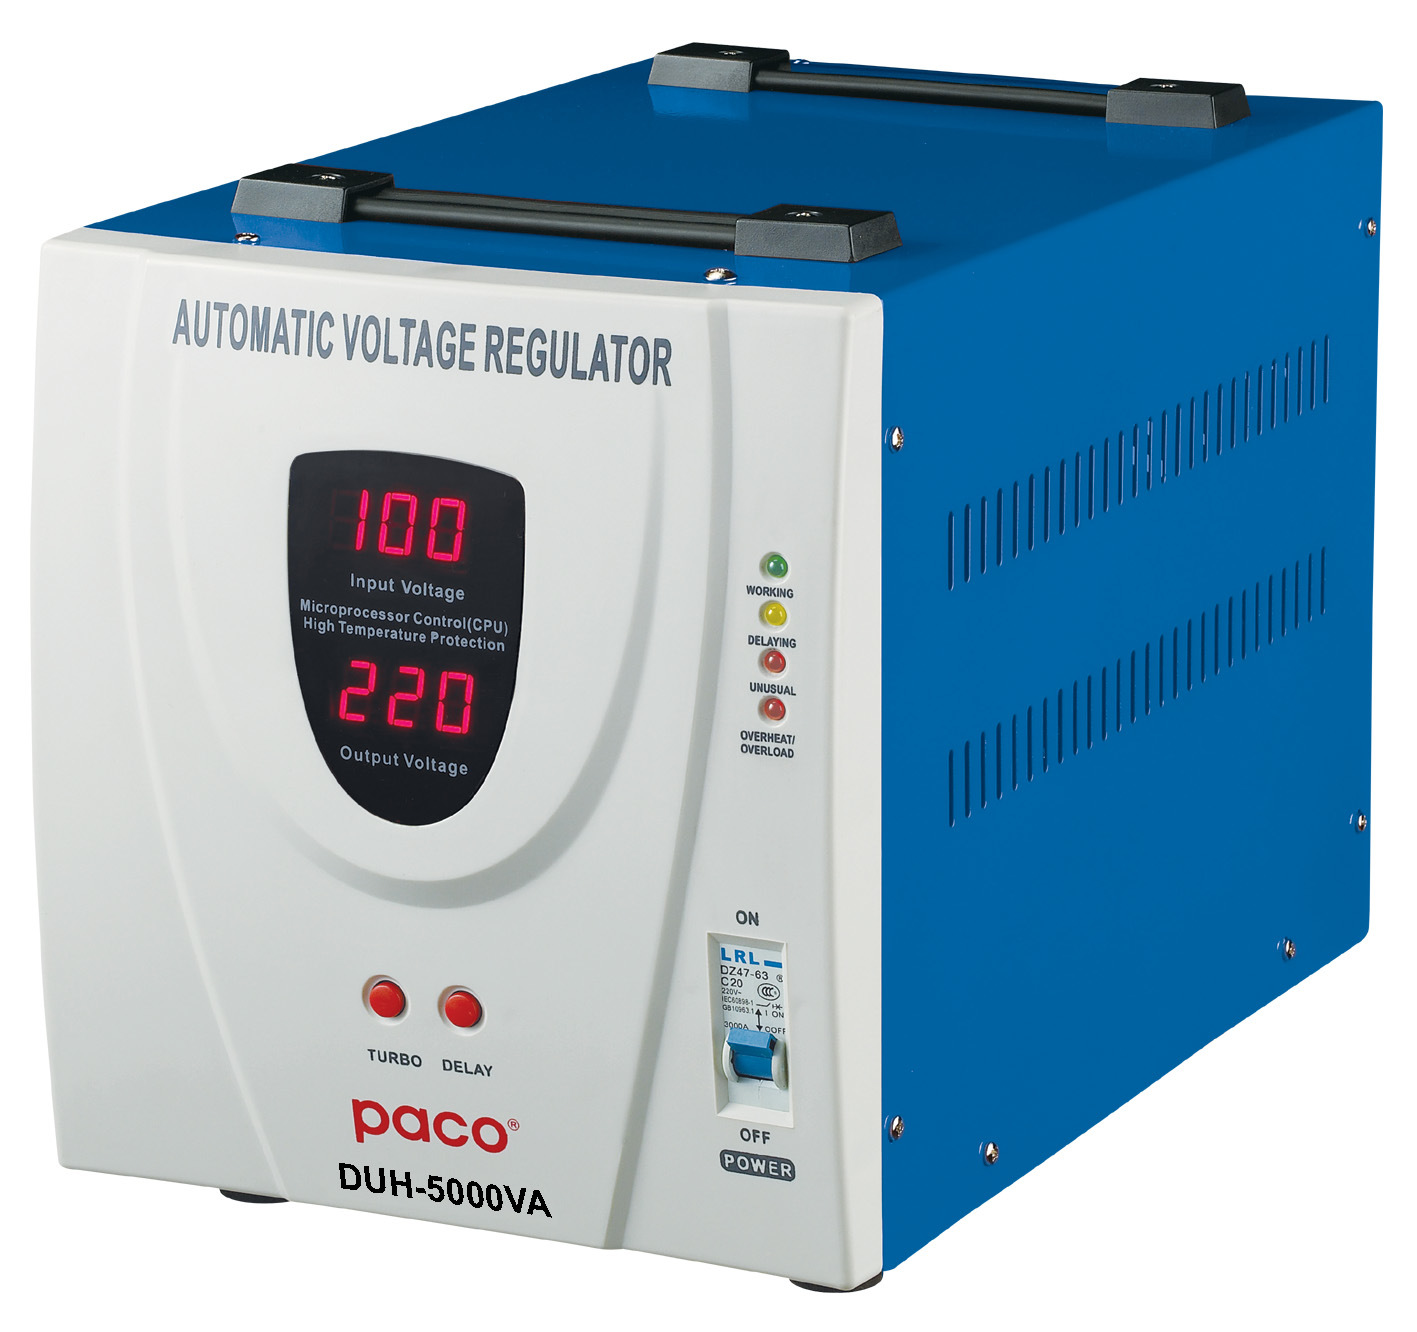 China Automatic Voltage Regulator DUH 5000VA BLUE also Electrical Wires Cables Cavi Elettrici also 7676276 besides 1908742767 moreover . on single phase electrical service